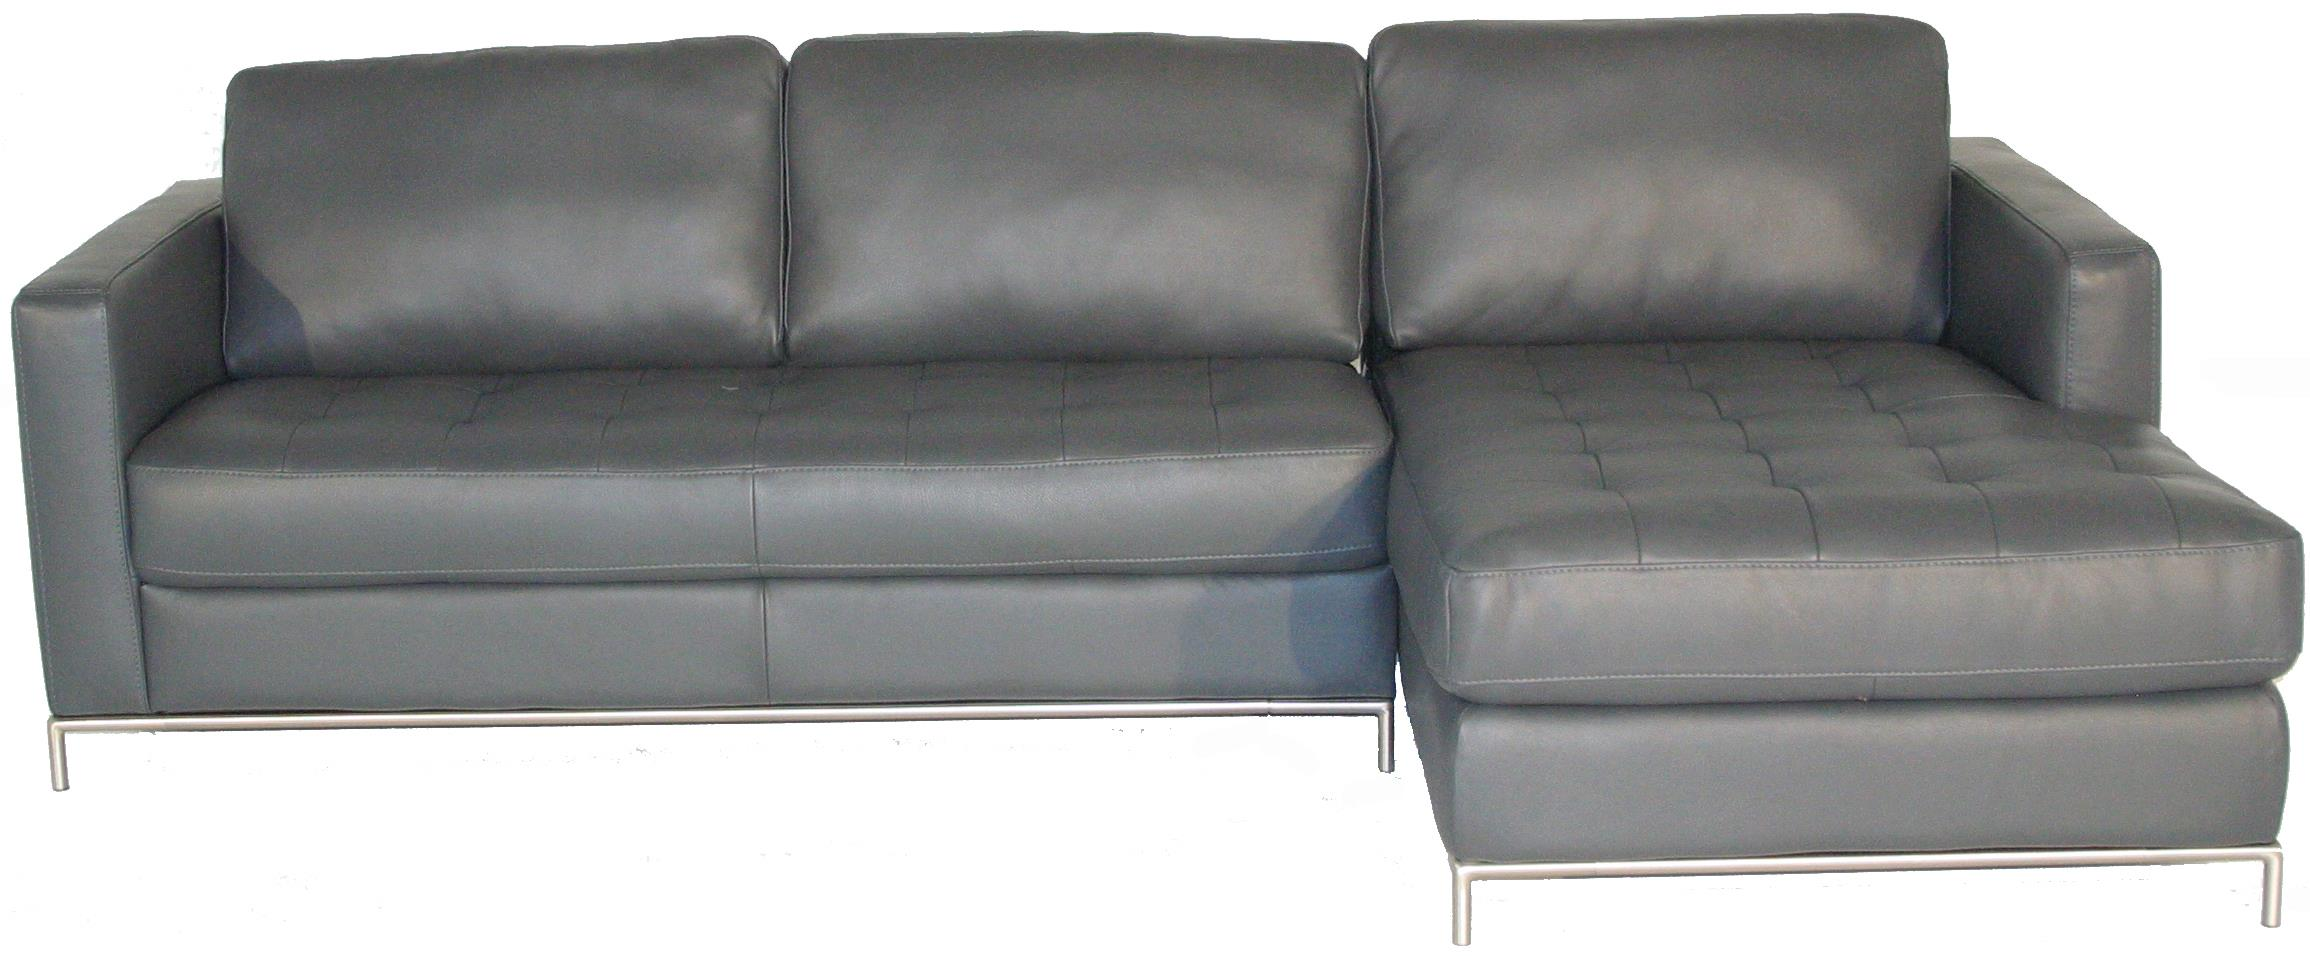 B805 RAF Sofa Chaise by Natuzzi Editions at Wilson's Furniture